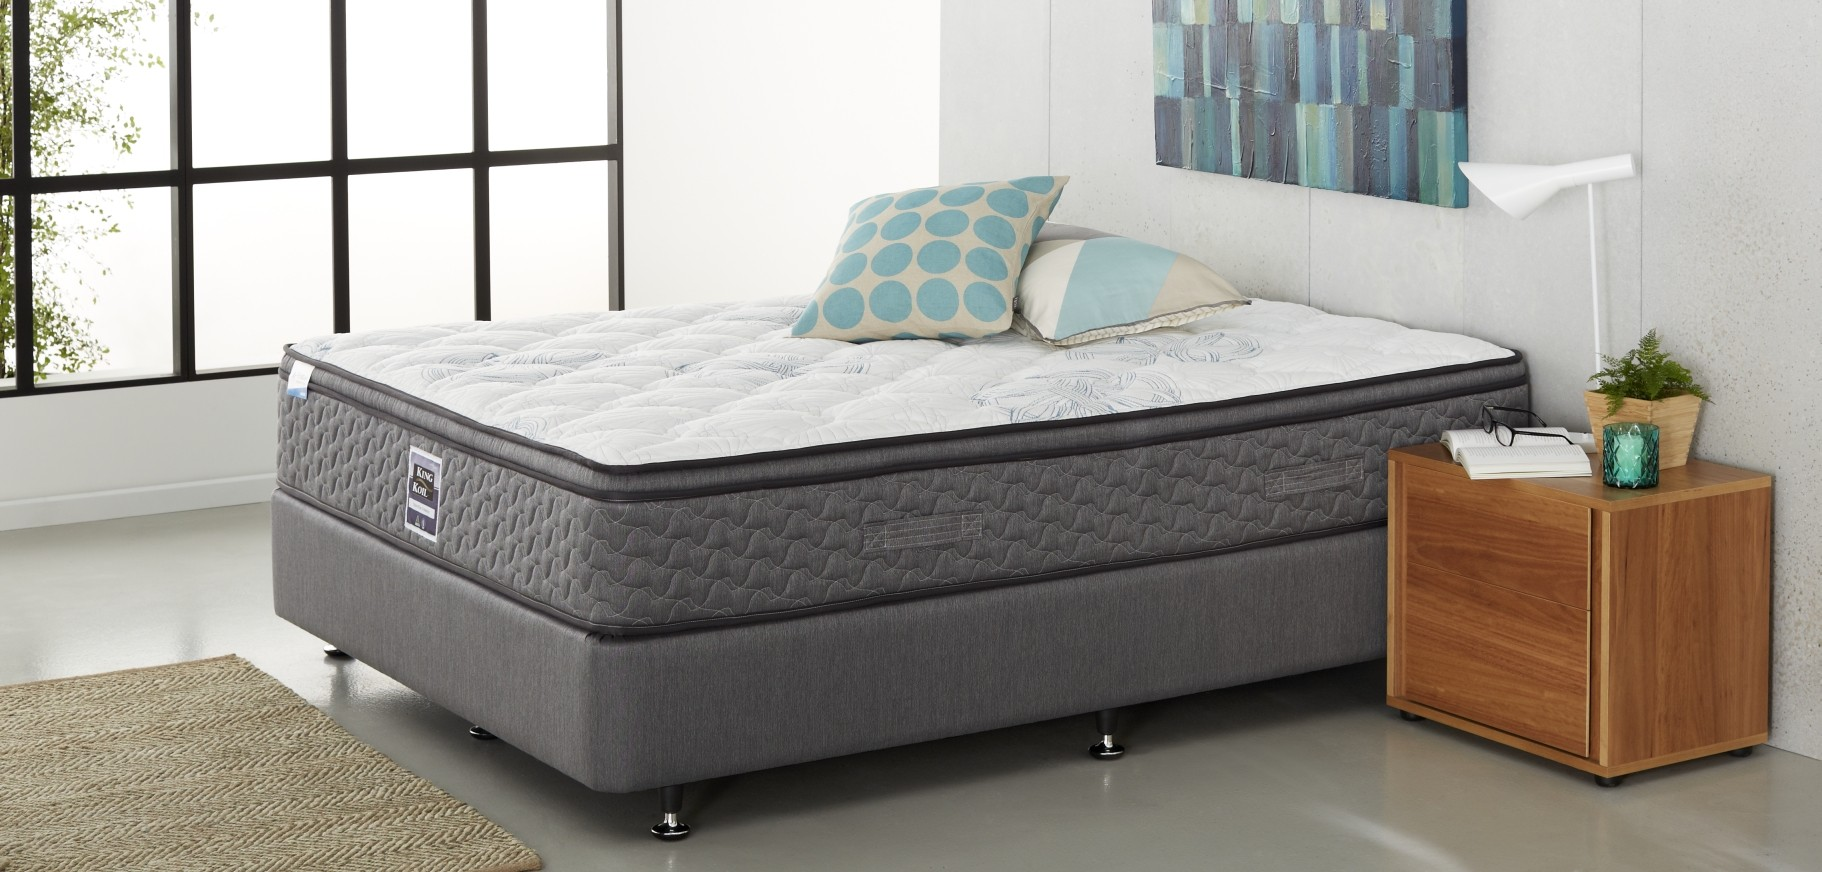 Single Mattress Adelaide King Koil Chiro Flex Reviews Productreview Au